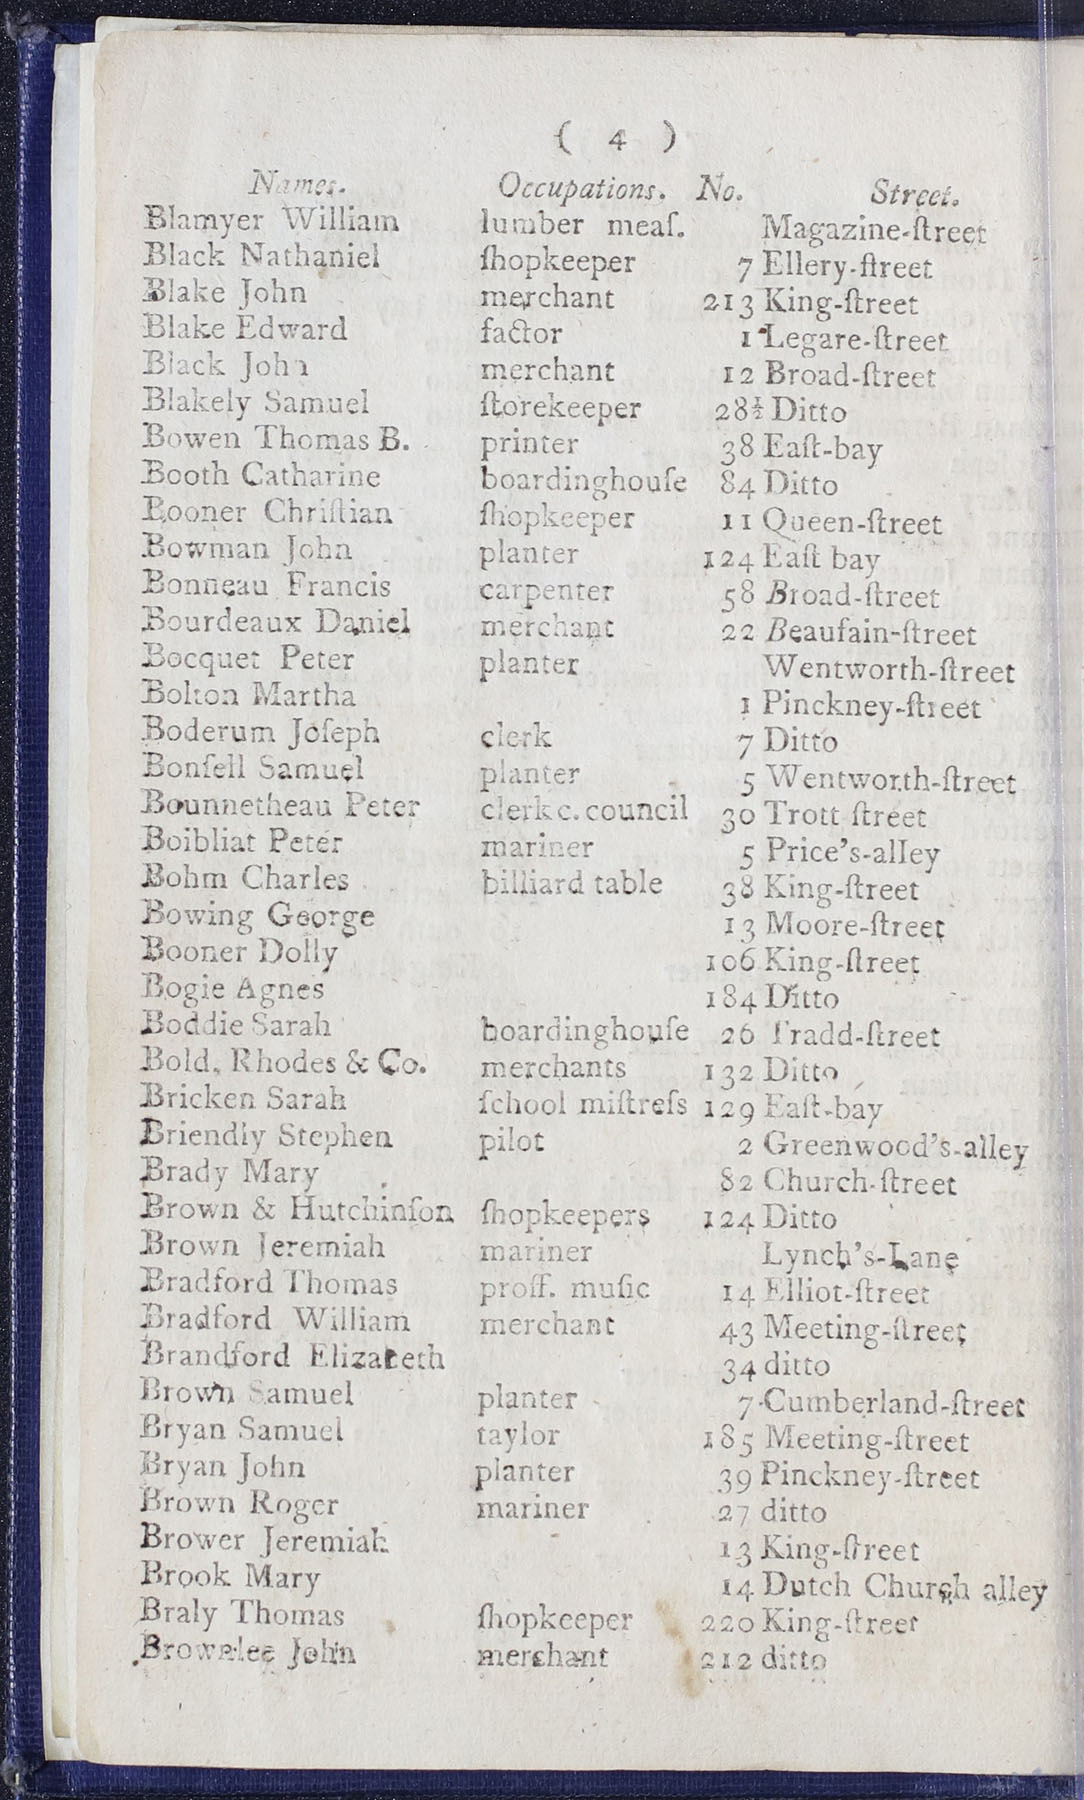 Charleston Directory 1790, page 4